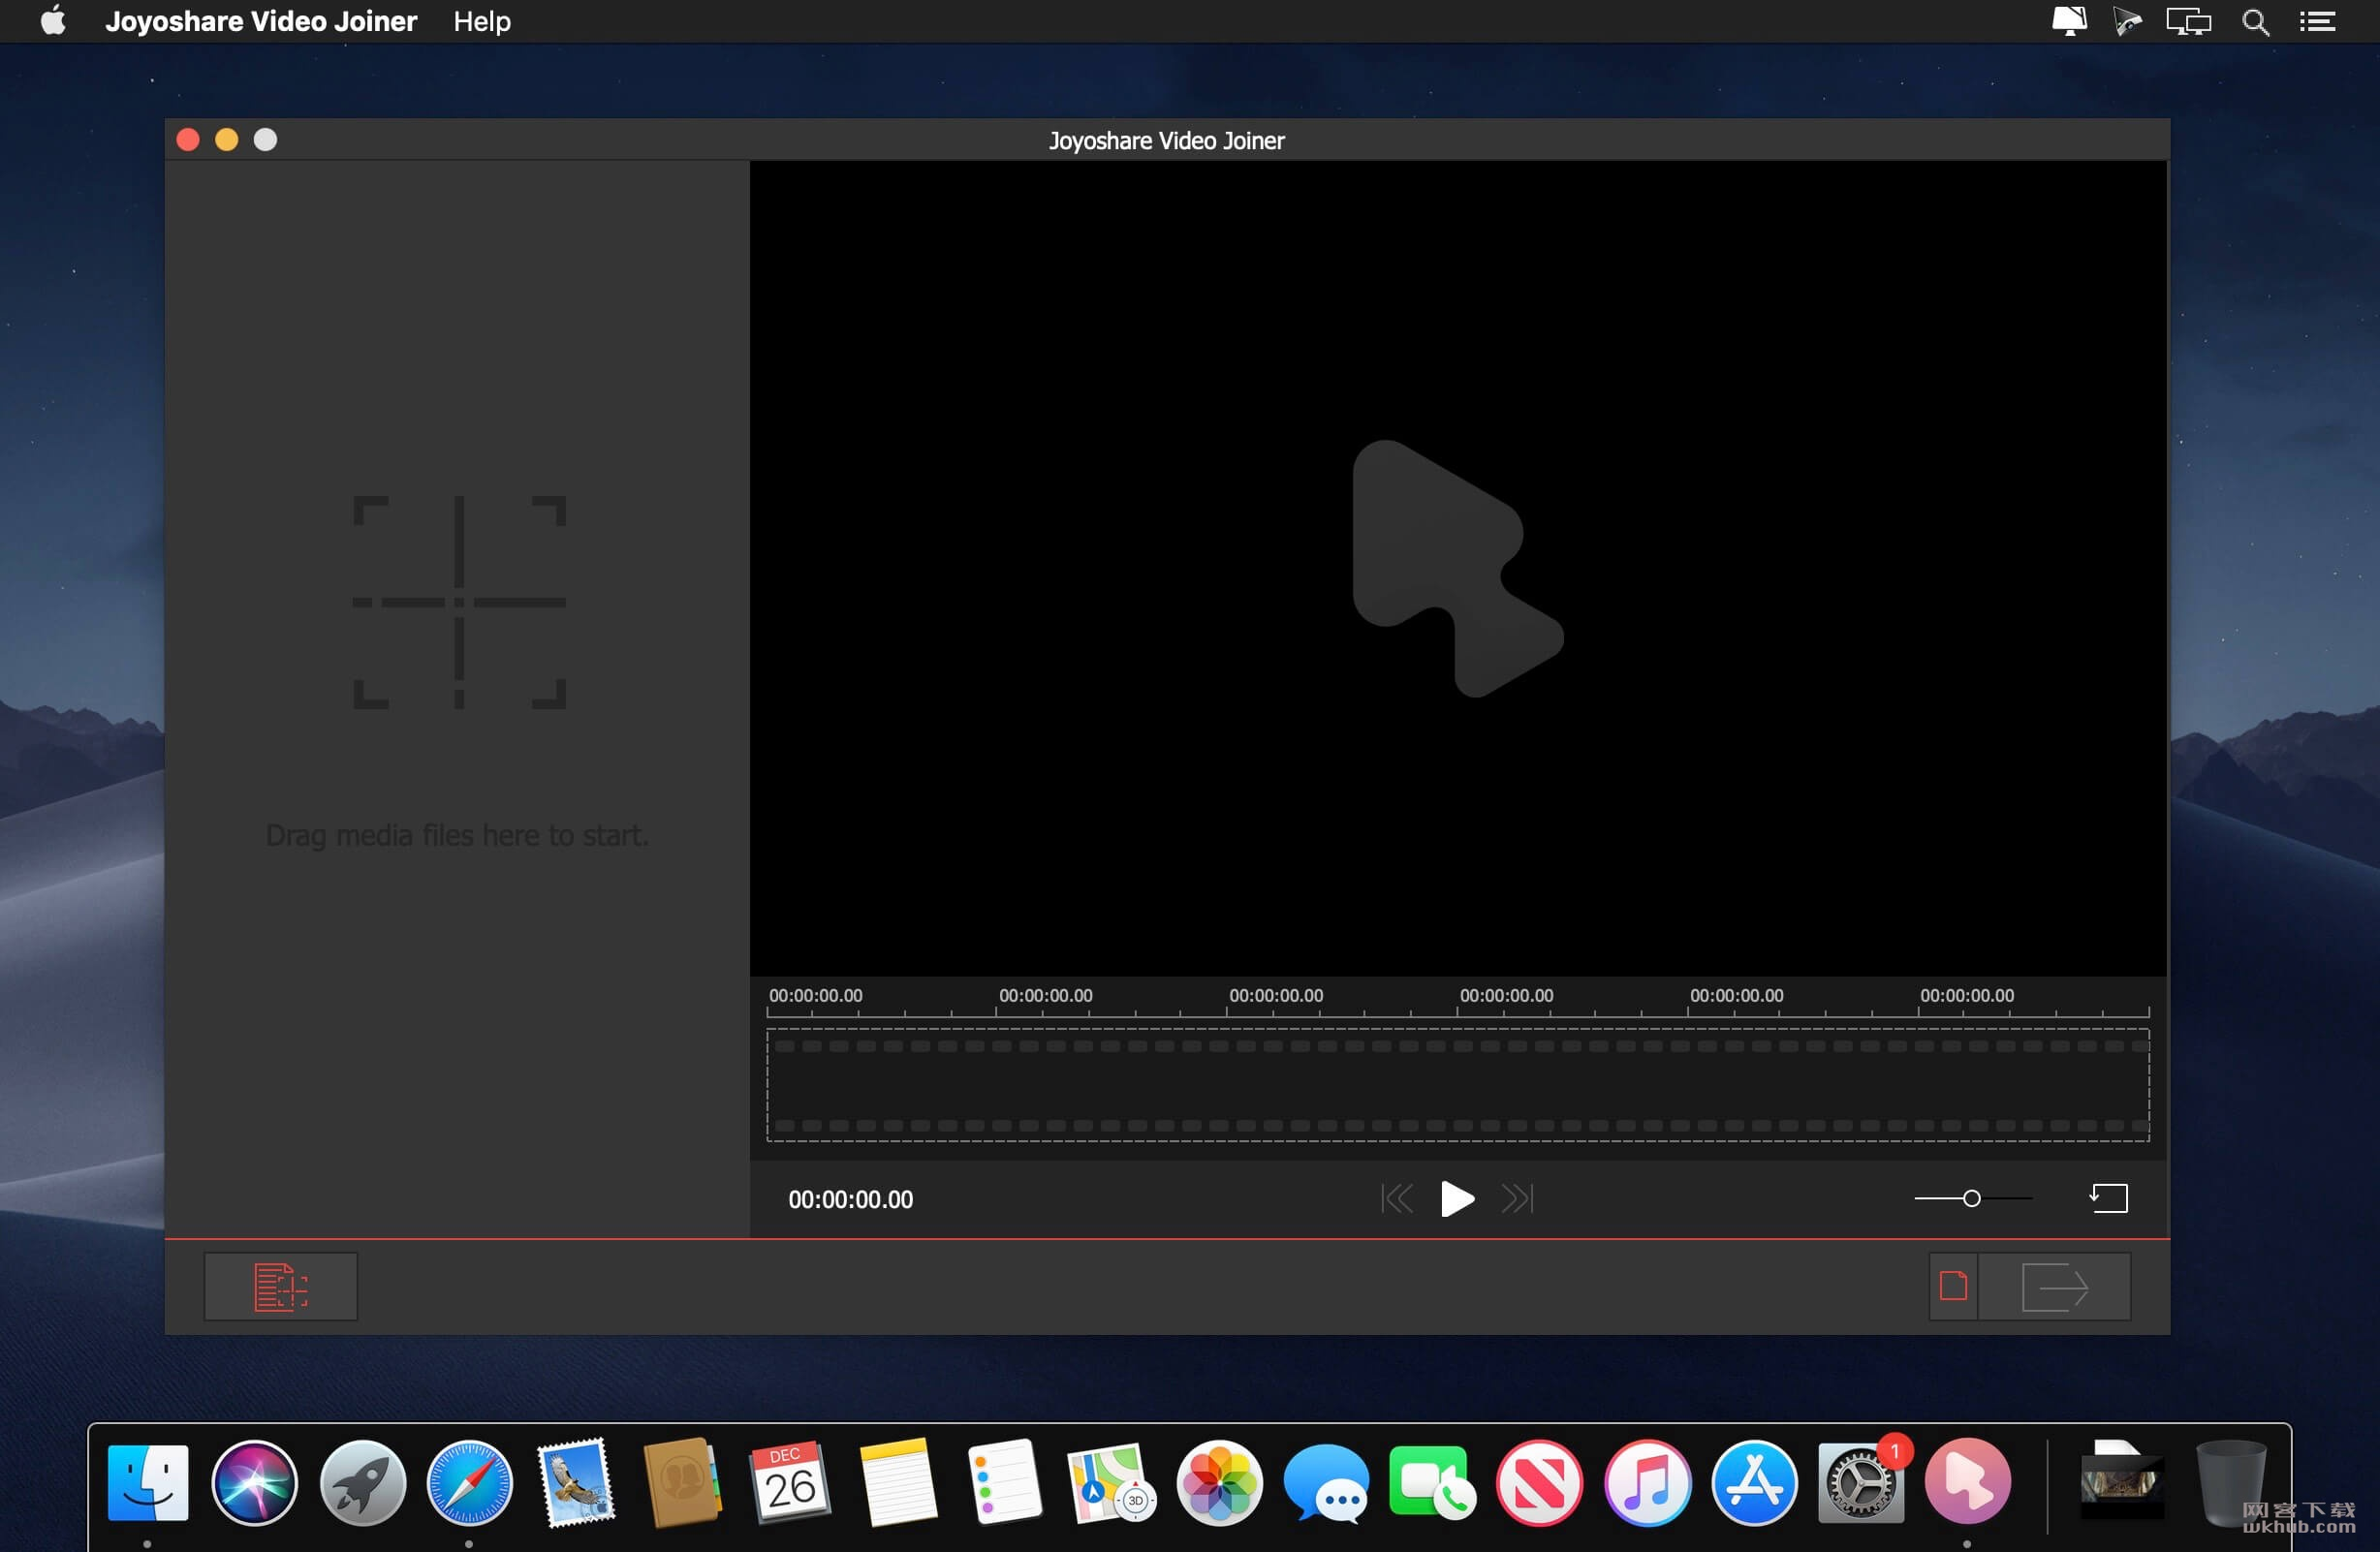 Joyoshare Video Joiner 1.0.0.2 视频合并工具